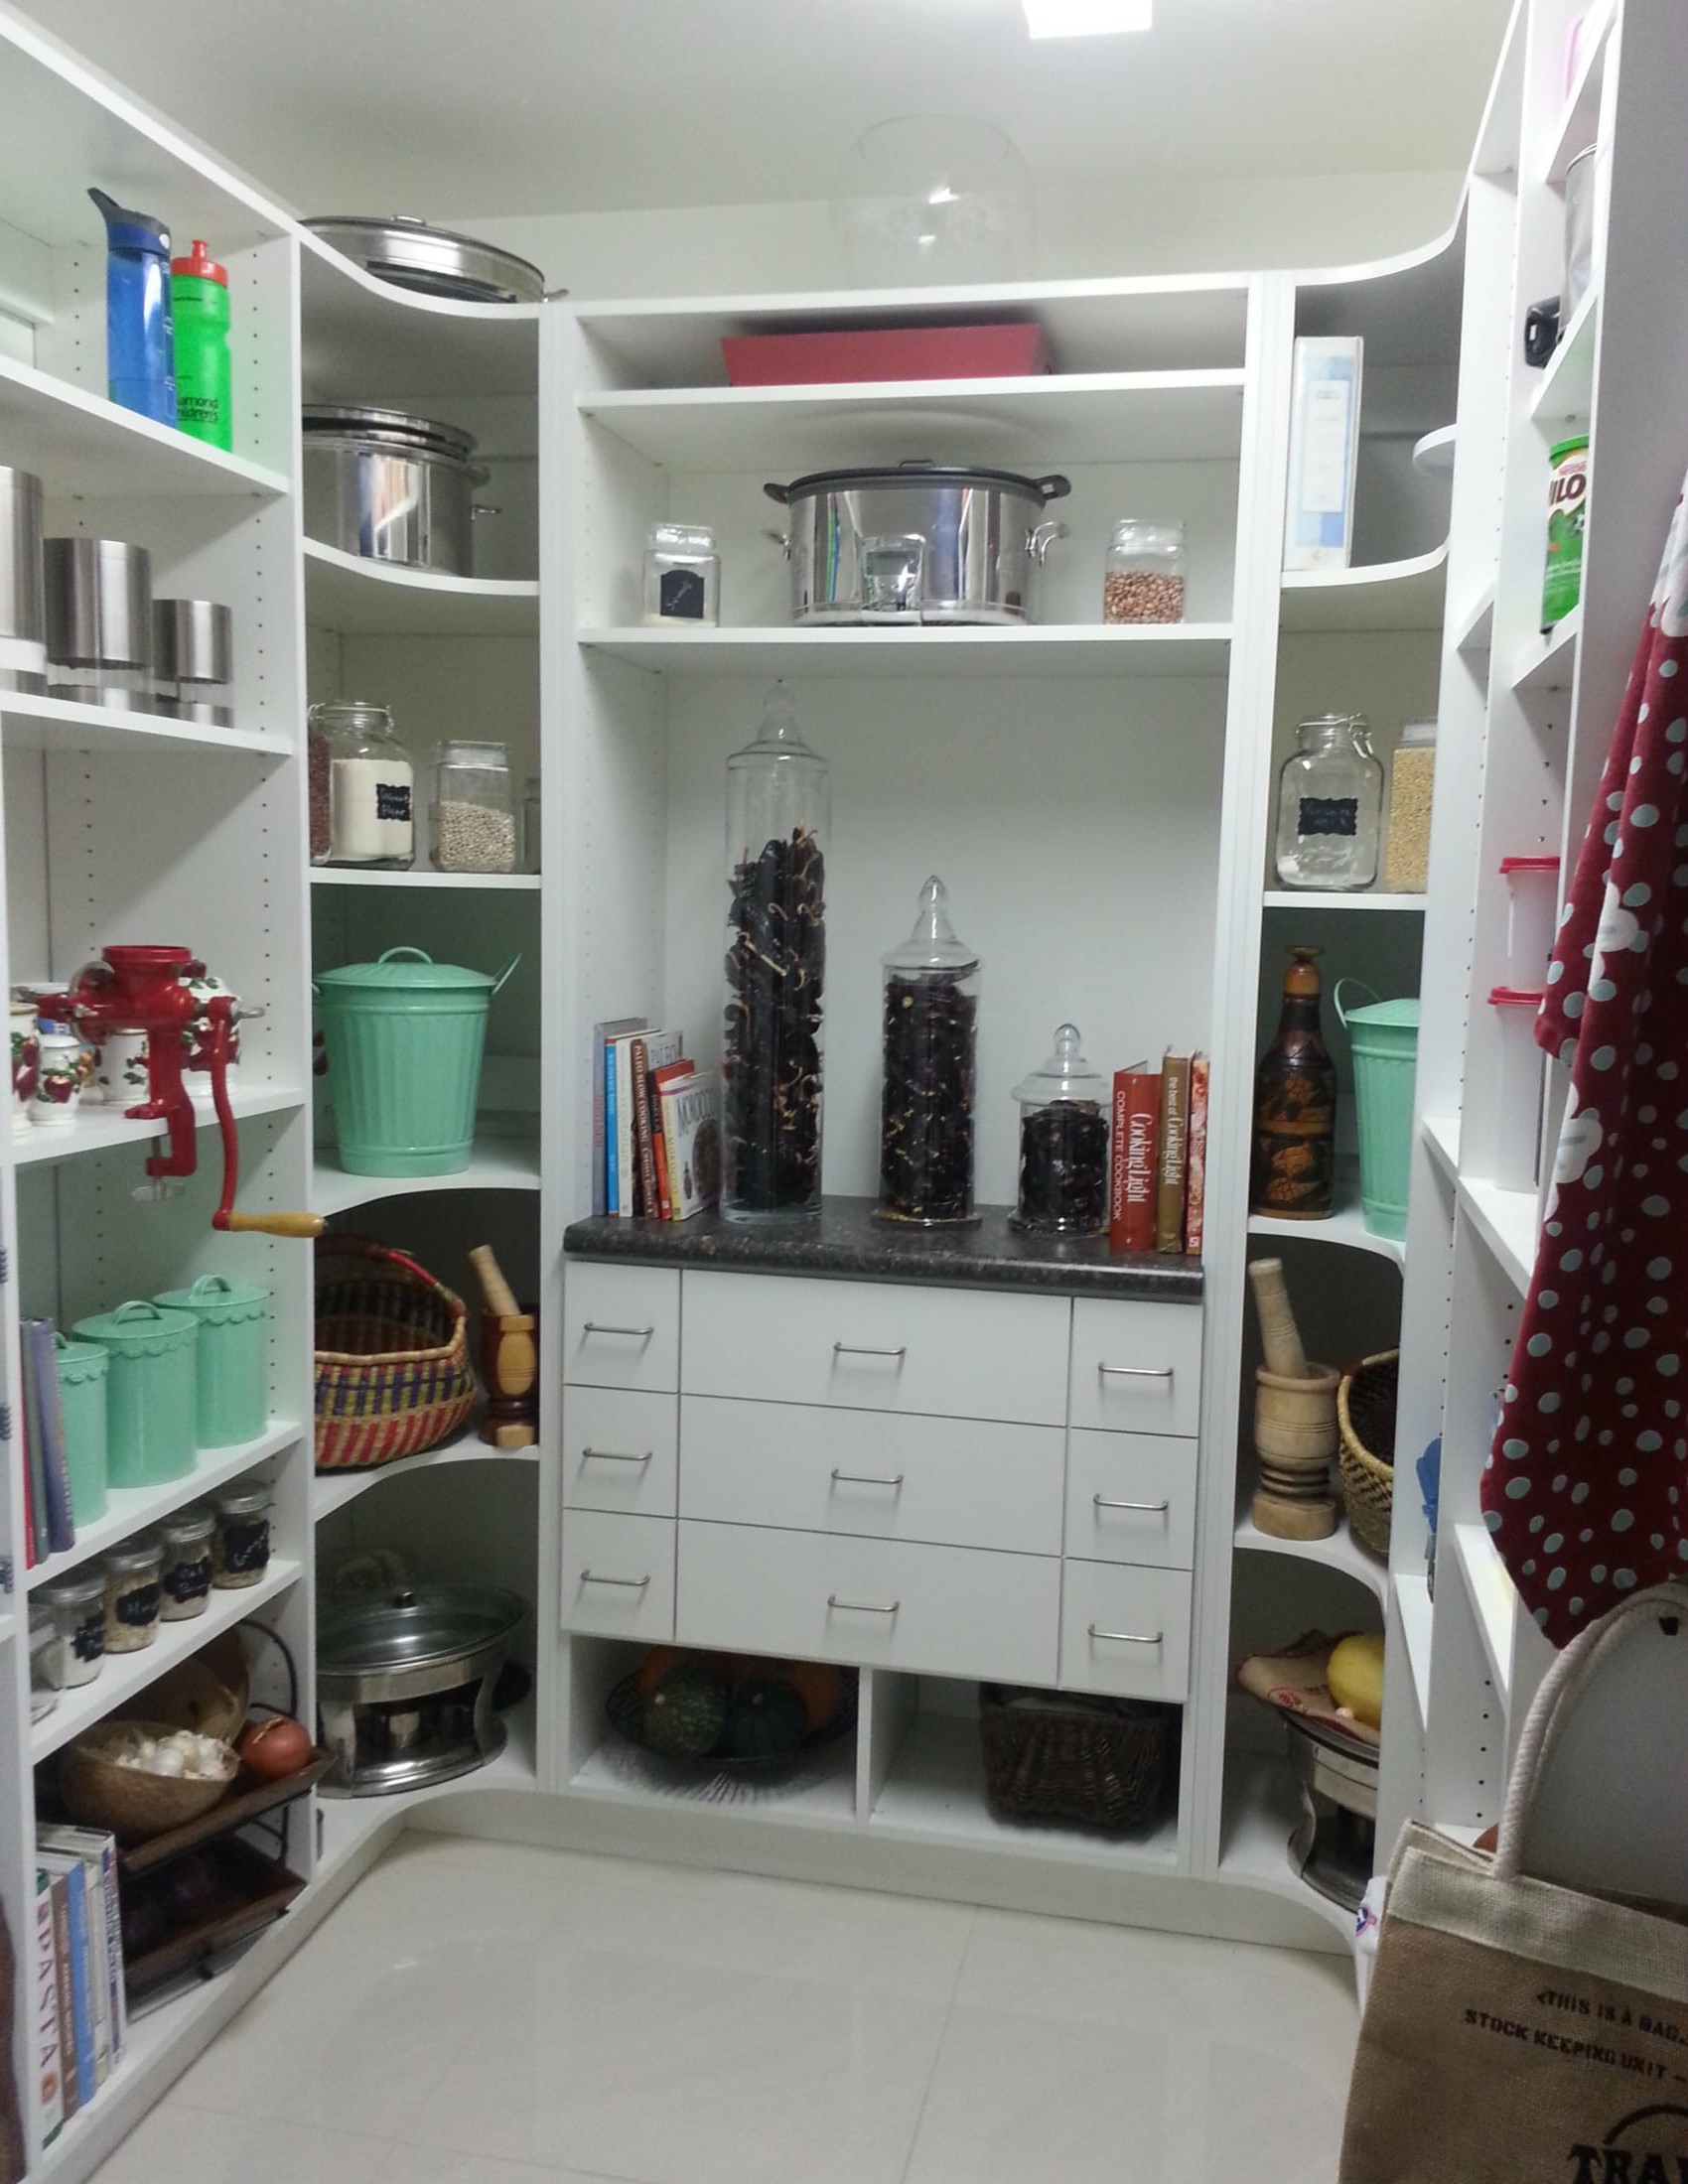 We Can Help Take Control Of Cluttered Space And Make It Useful Once Again!